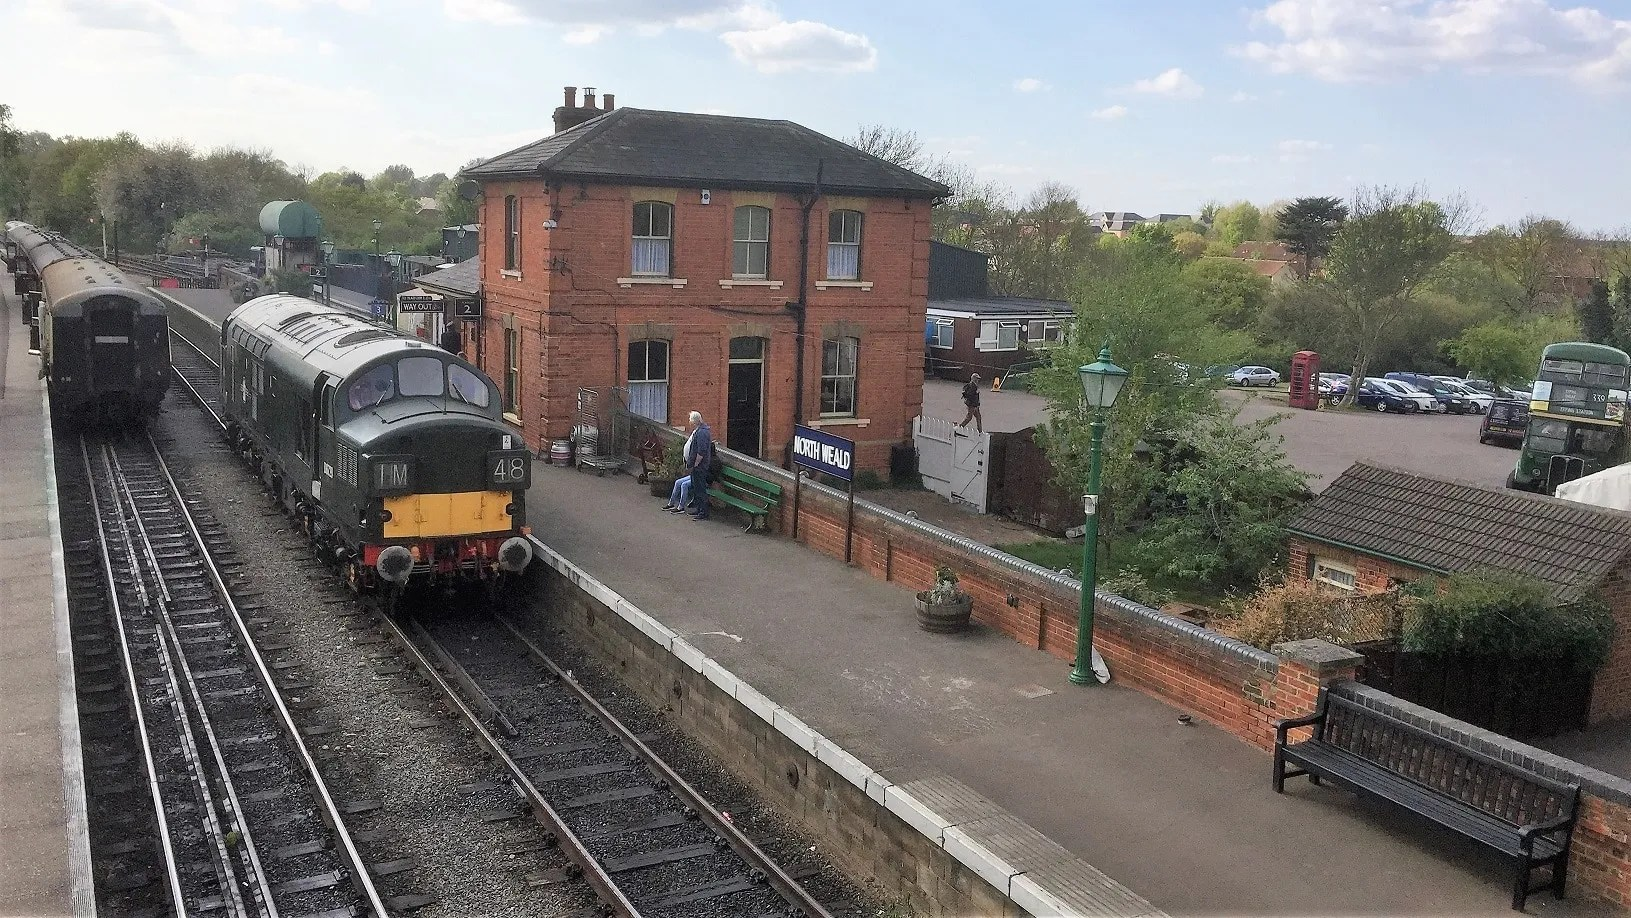 D6729 waits to depart from North Weald Station as London Transport country area RT1700 arrives on the Station forecourt